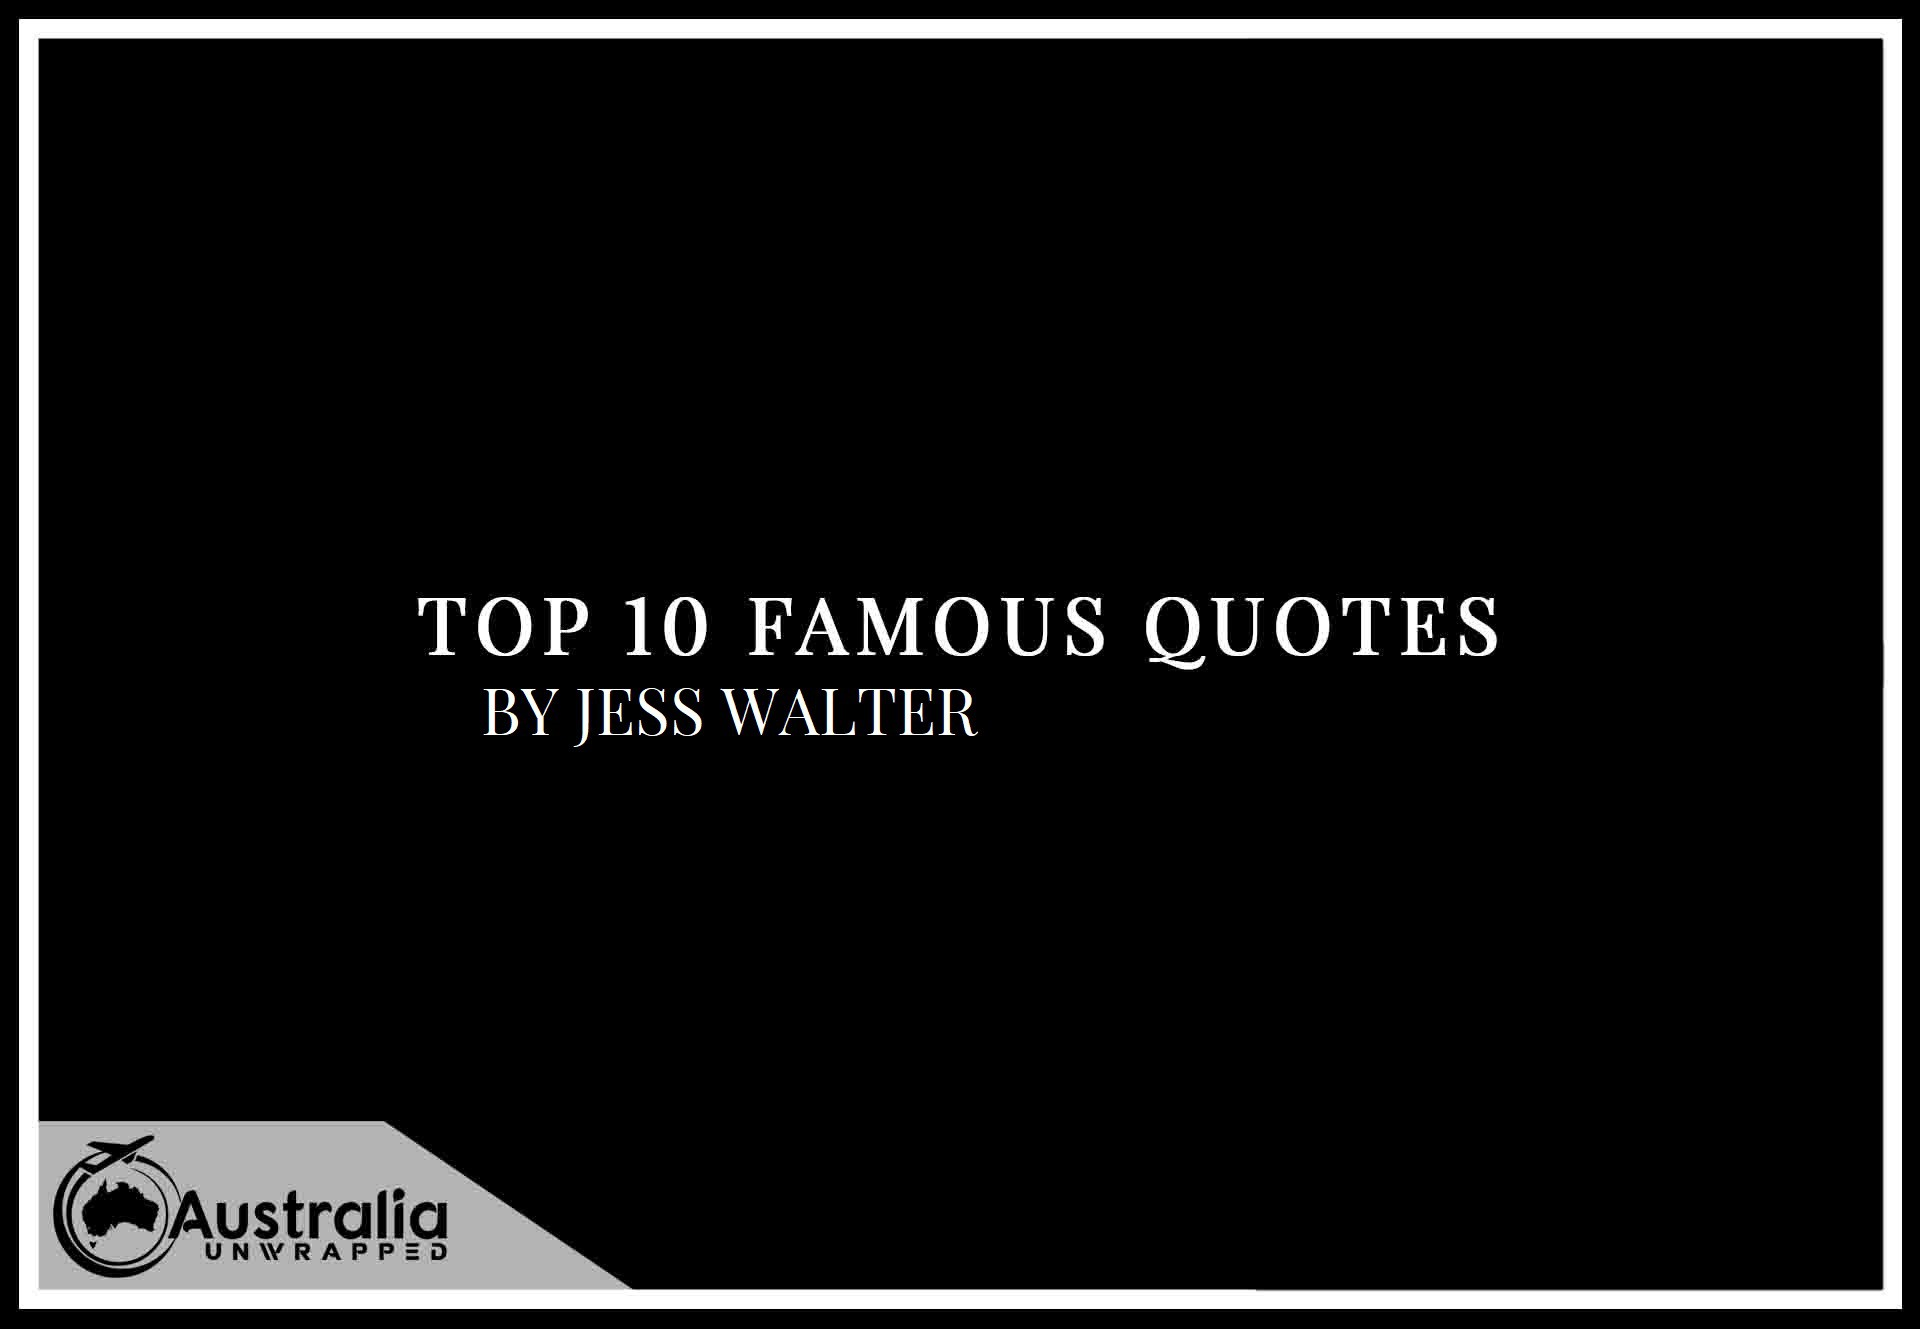 Top 10 Famous Quotes by Author Jess Walter